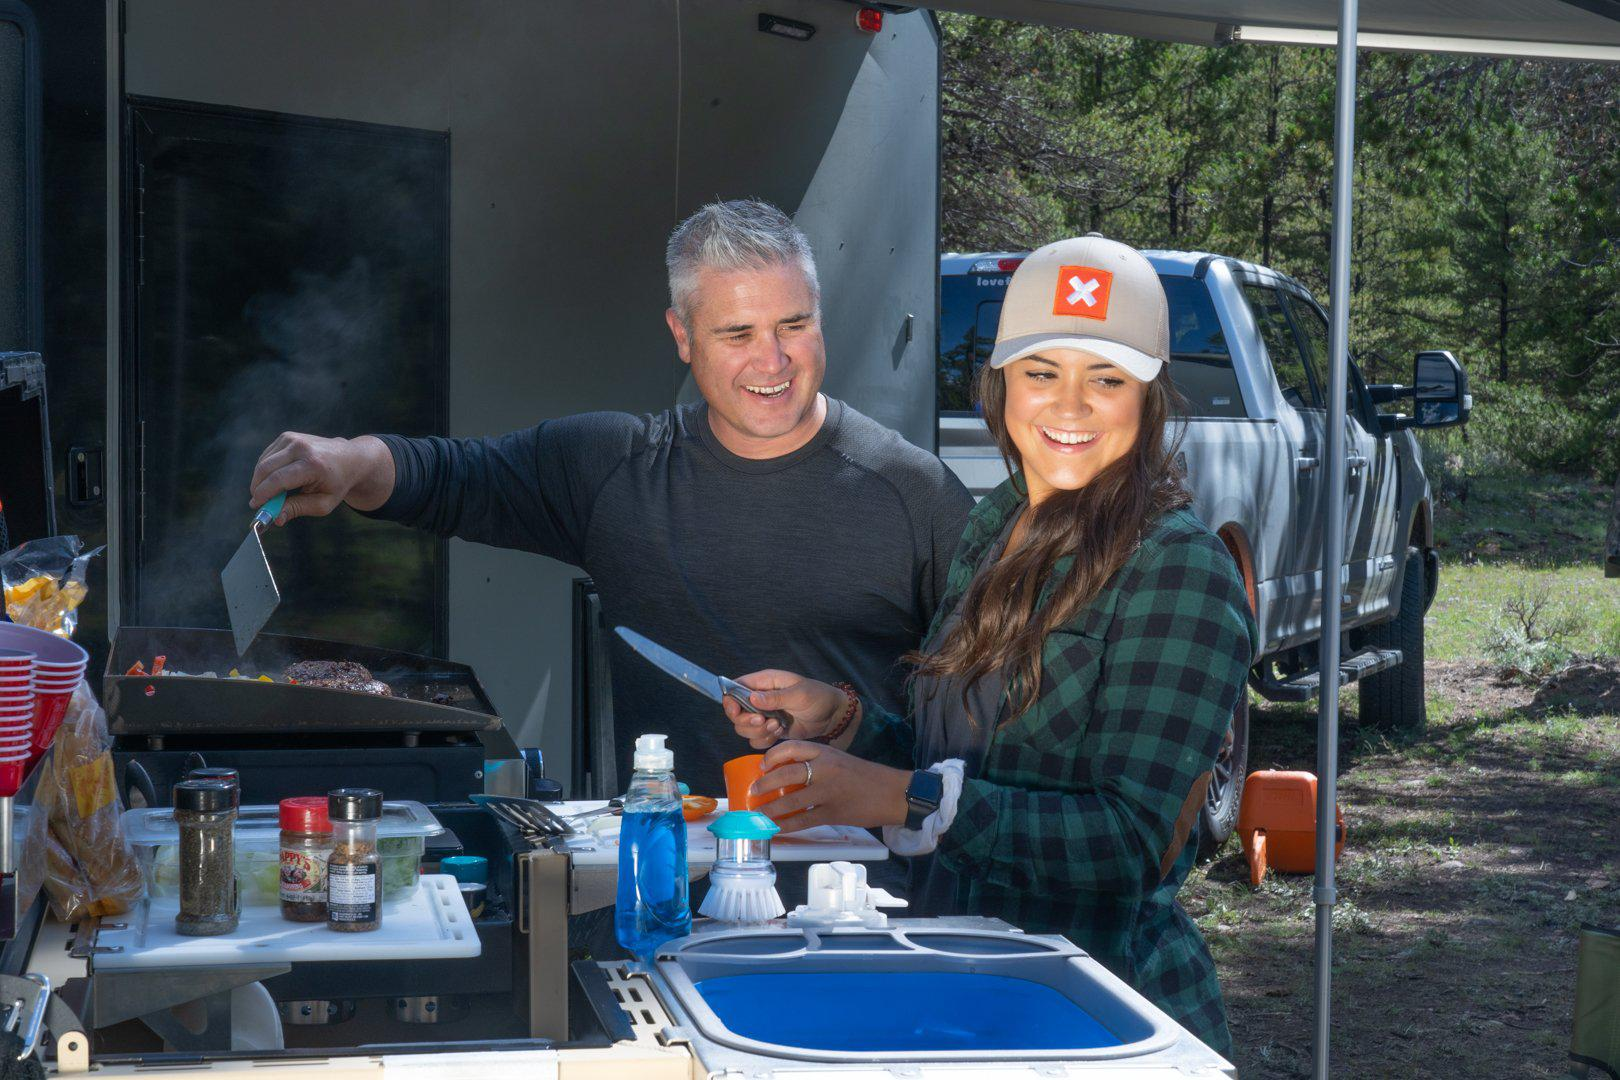 Collapsible Sink pictured with two people using a tailgatengo